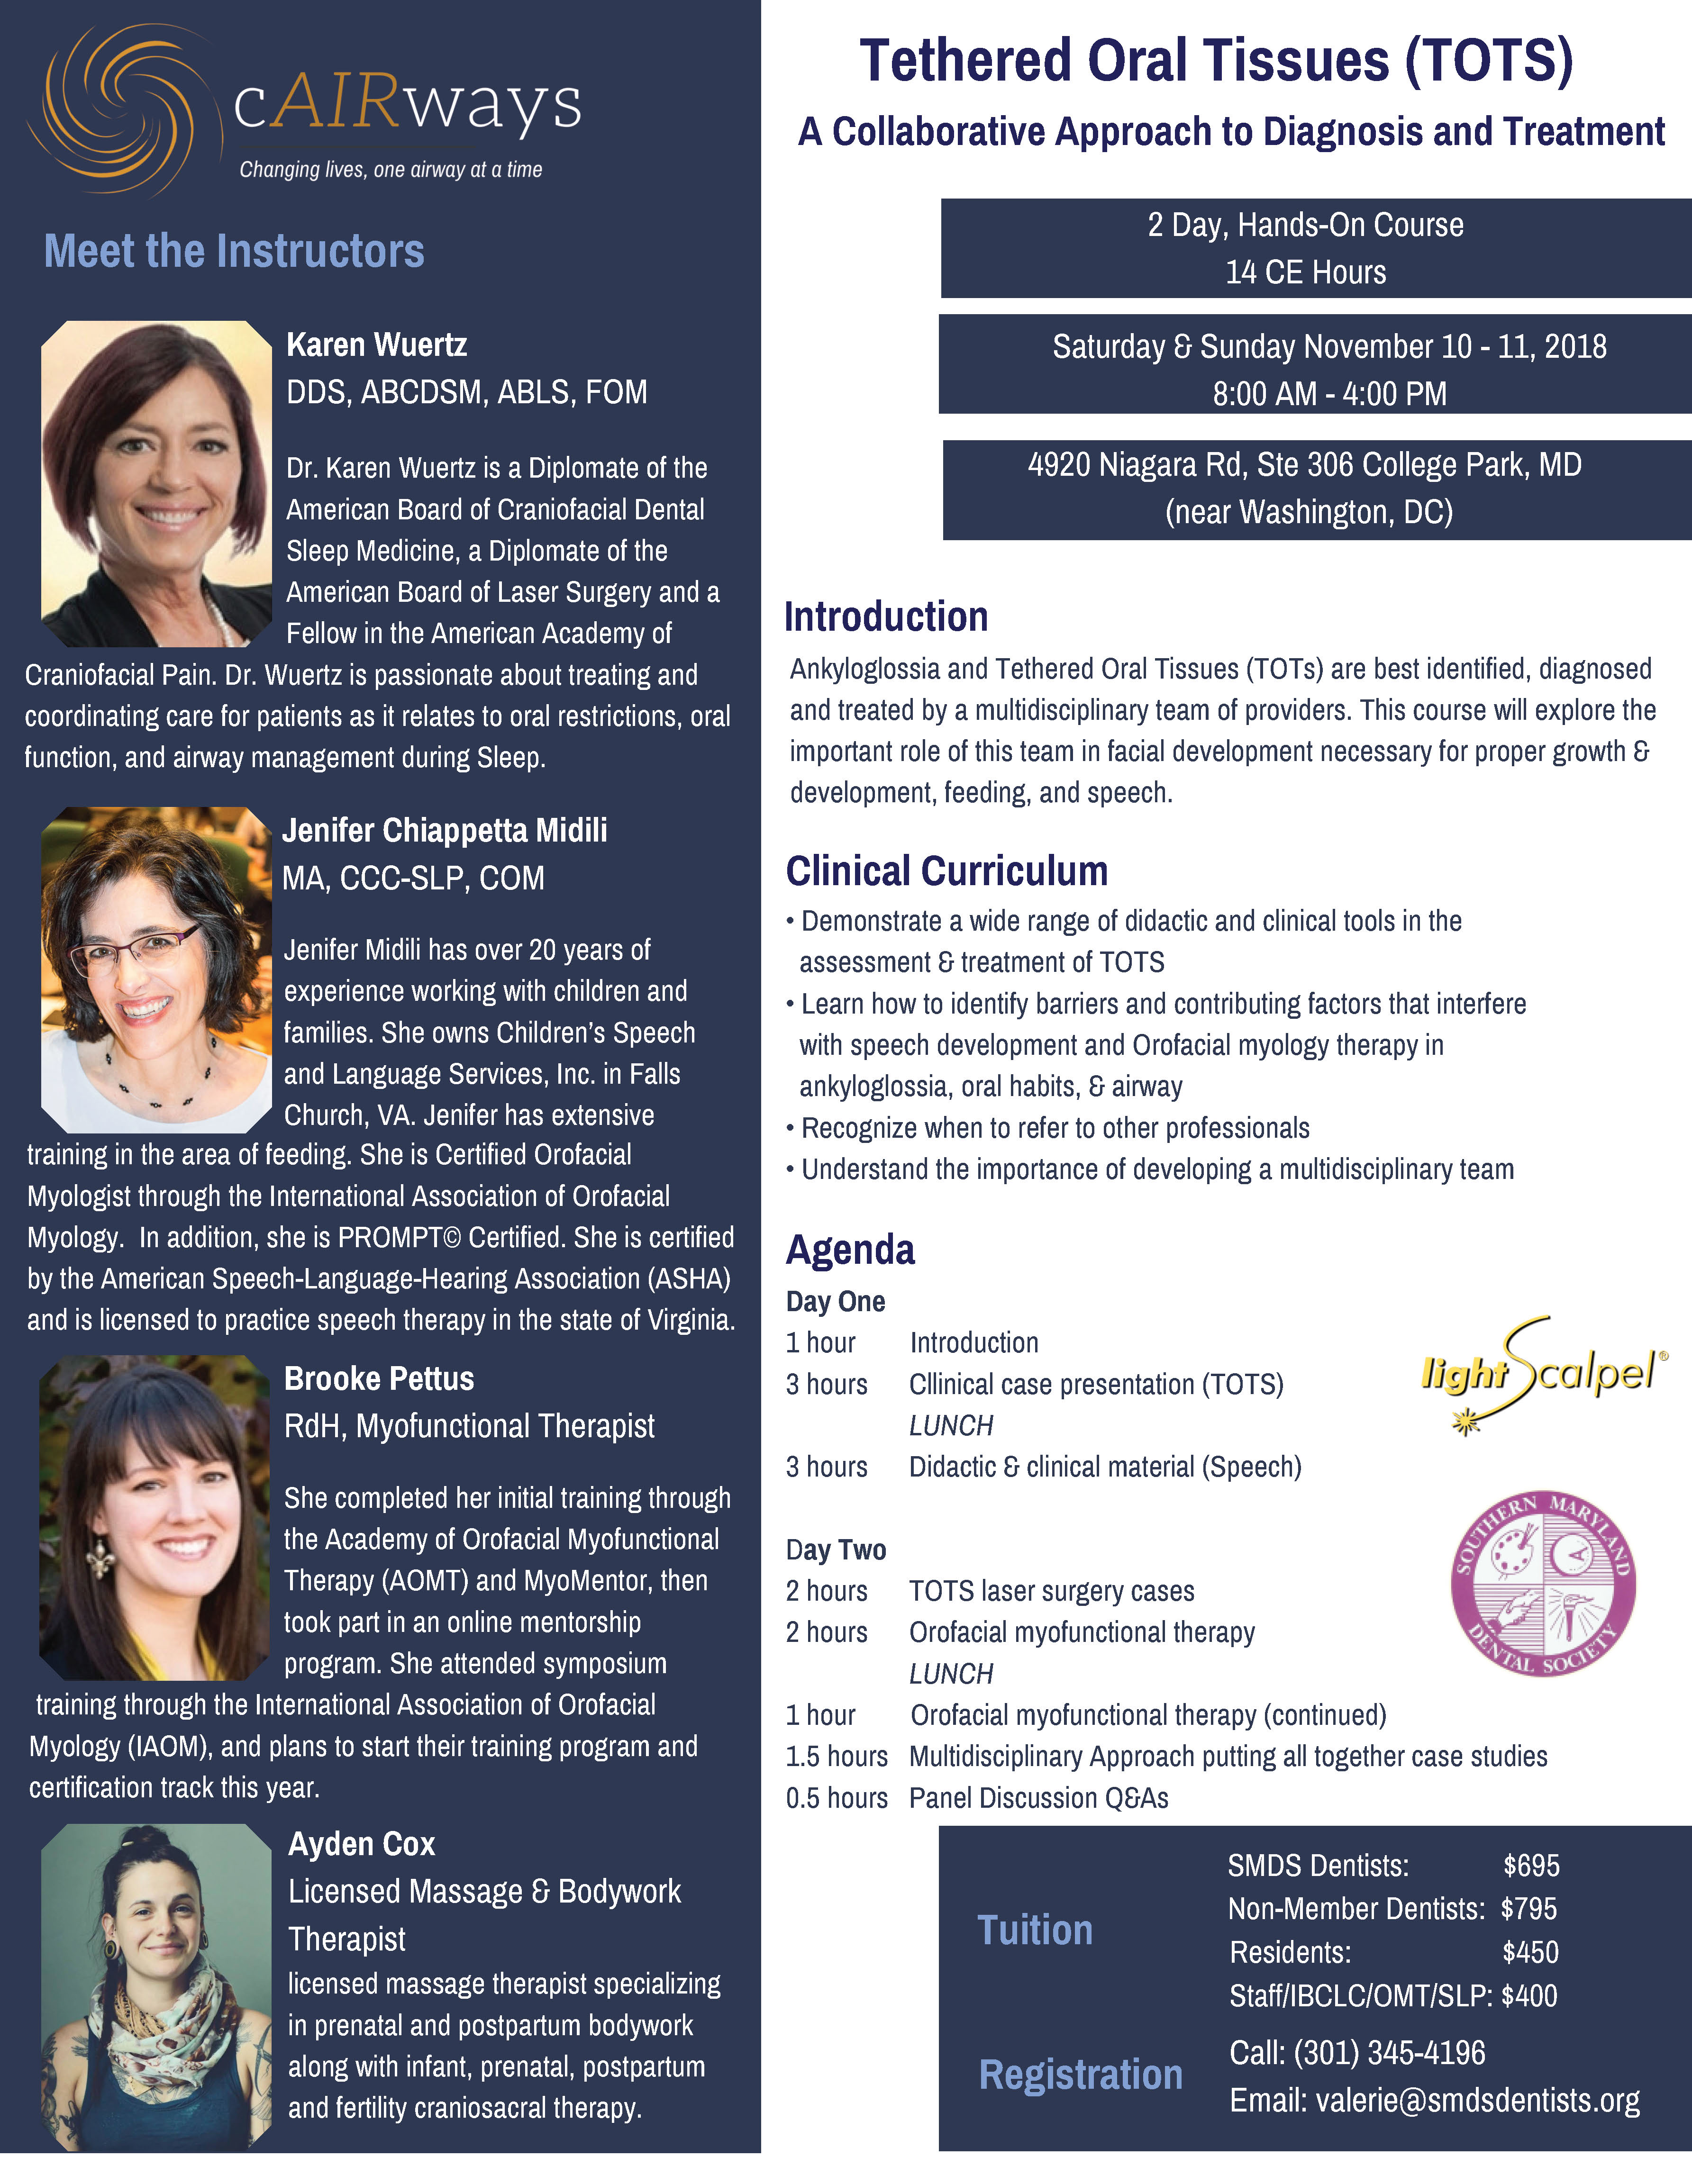 Tethered Oral Tissues Course